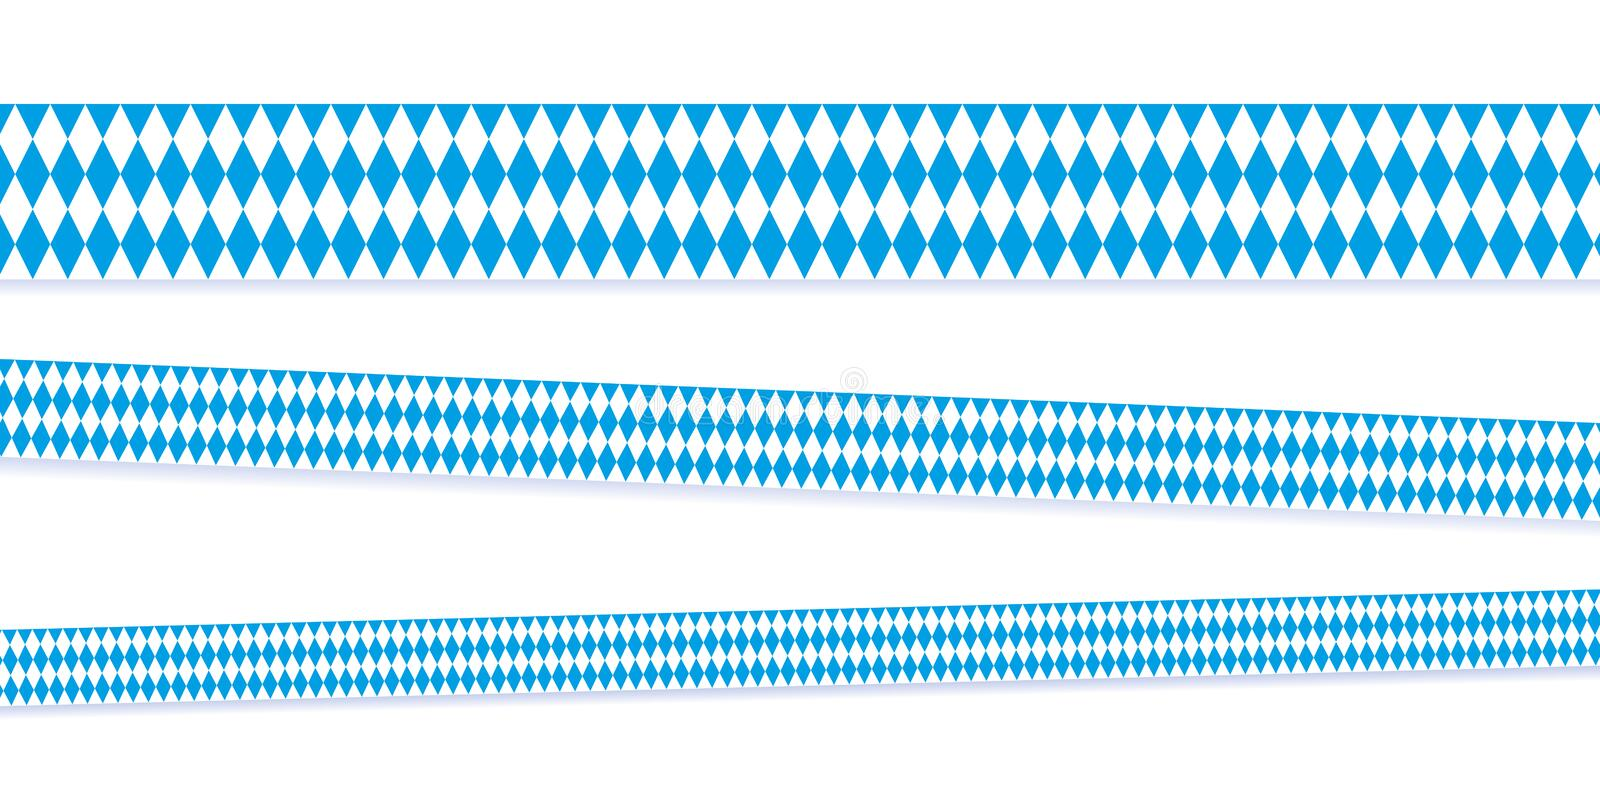 Ribbons in bavarian colors blue and white. Vector illustration EPS10 stock illustration